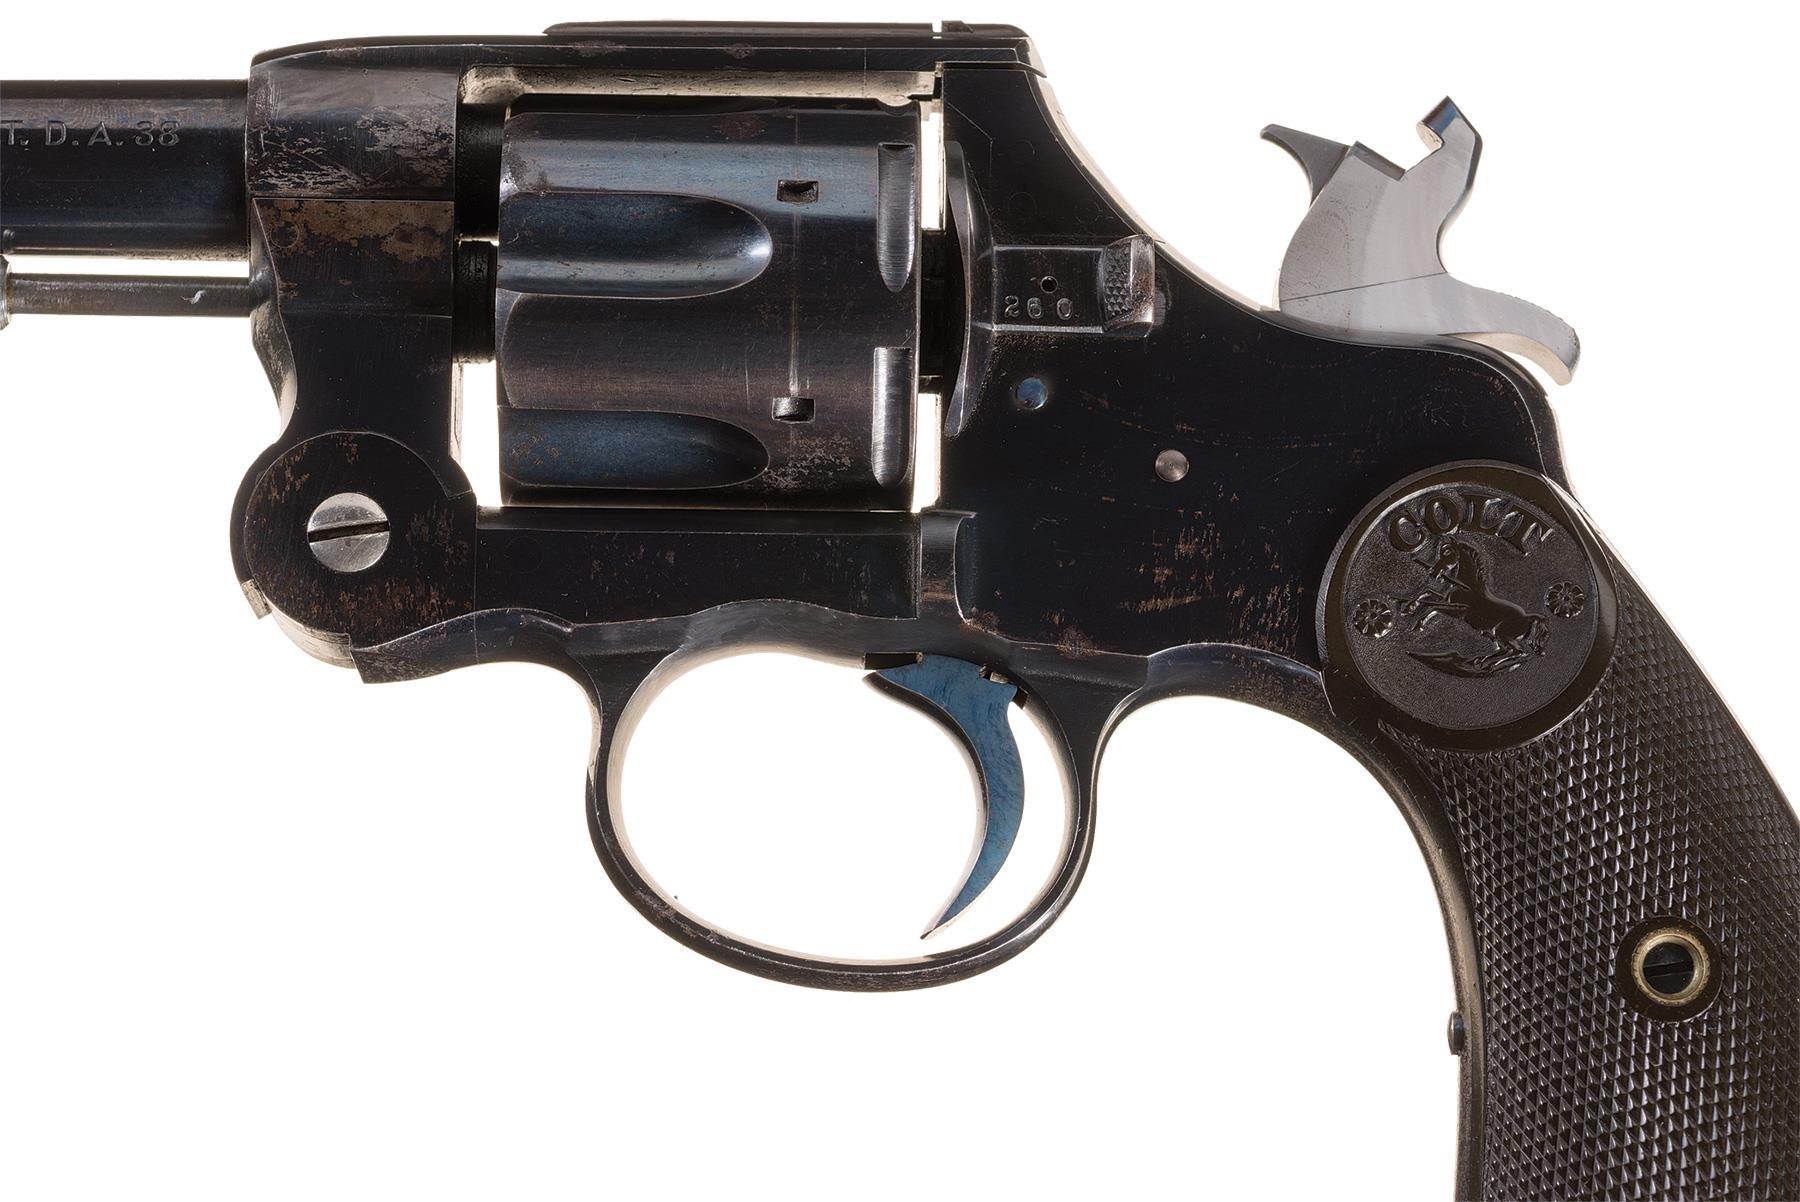 This close up of the action of the Colt top break revolver shows the notched hammer which helps lock the revolver closed.